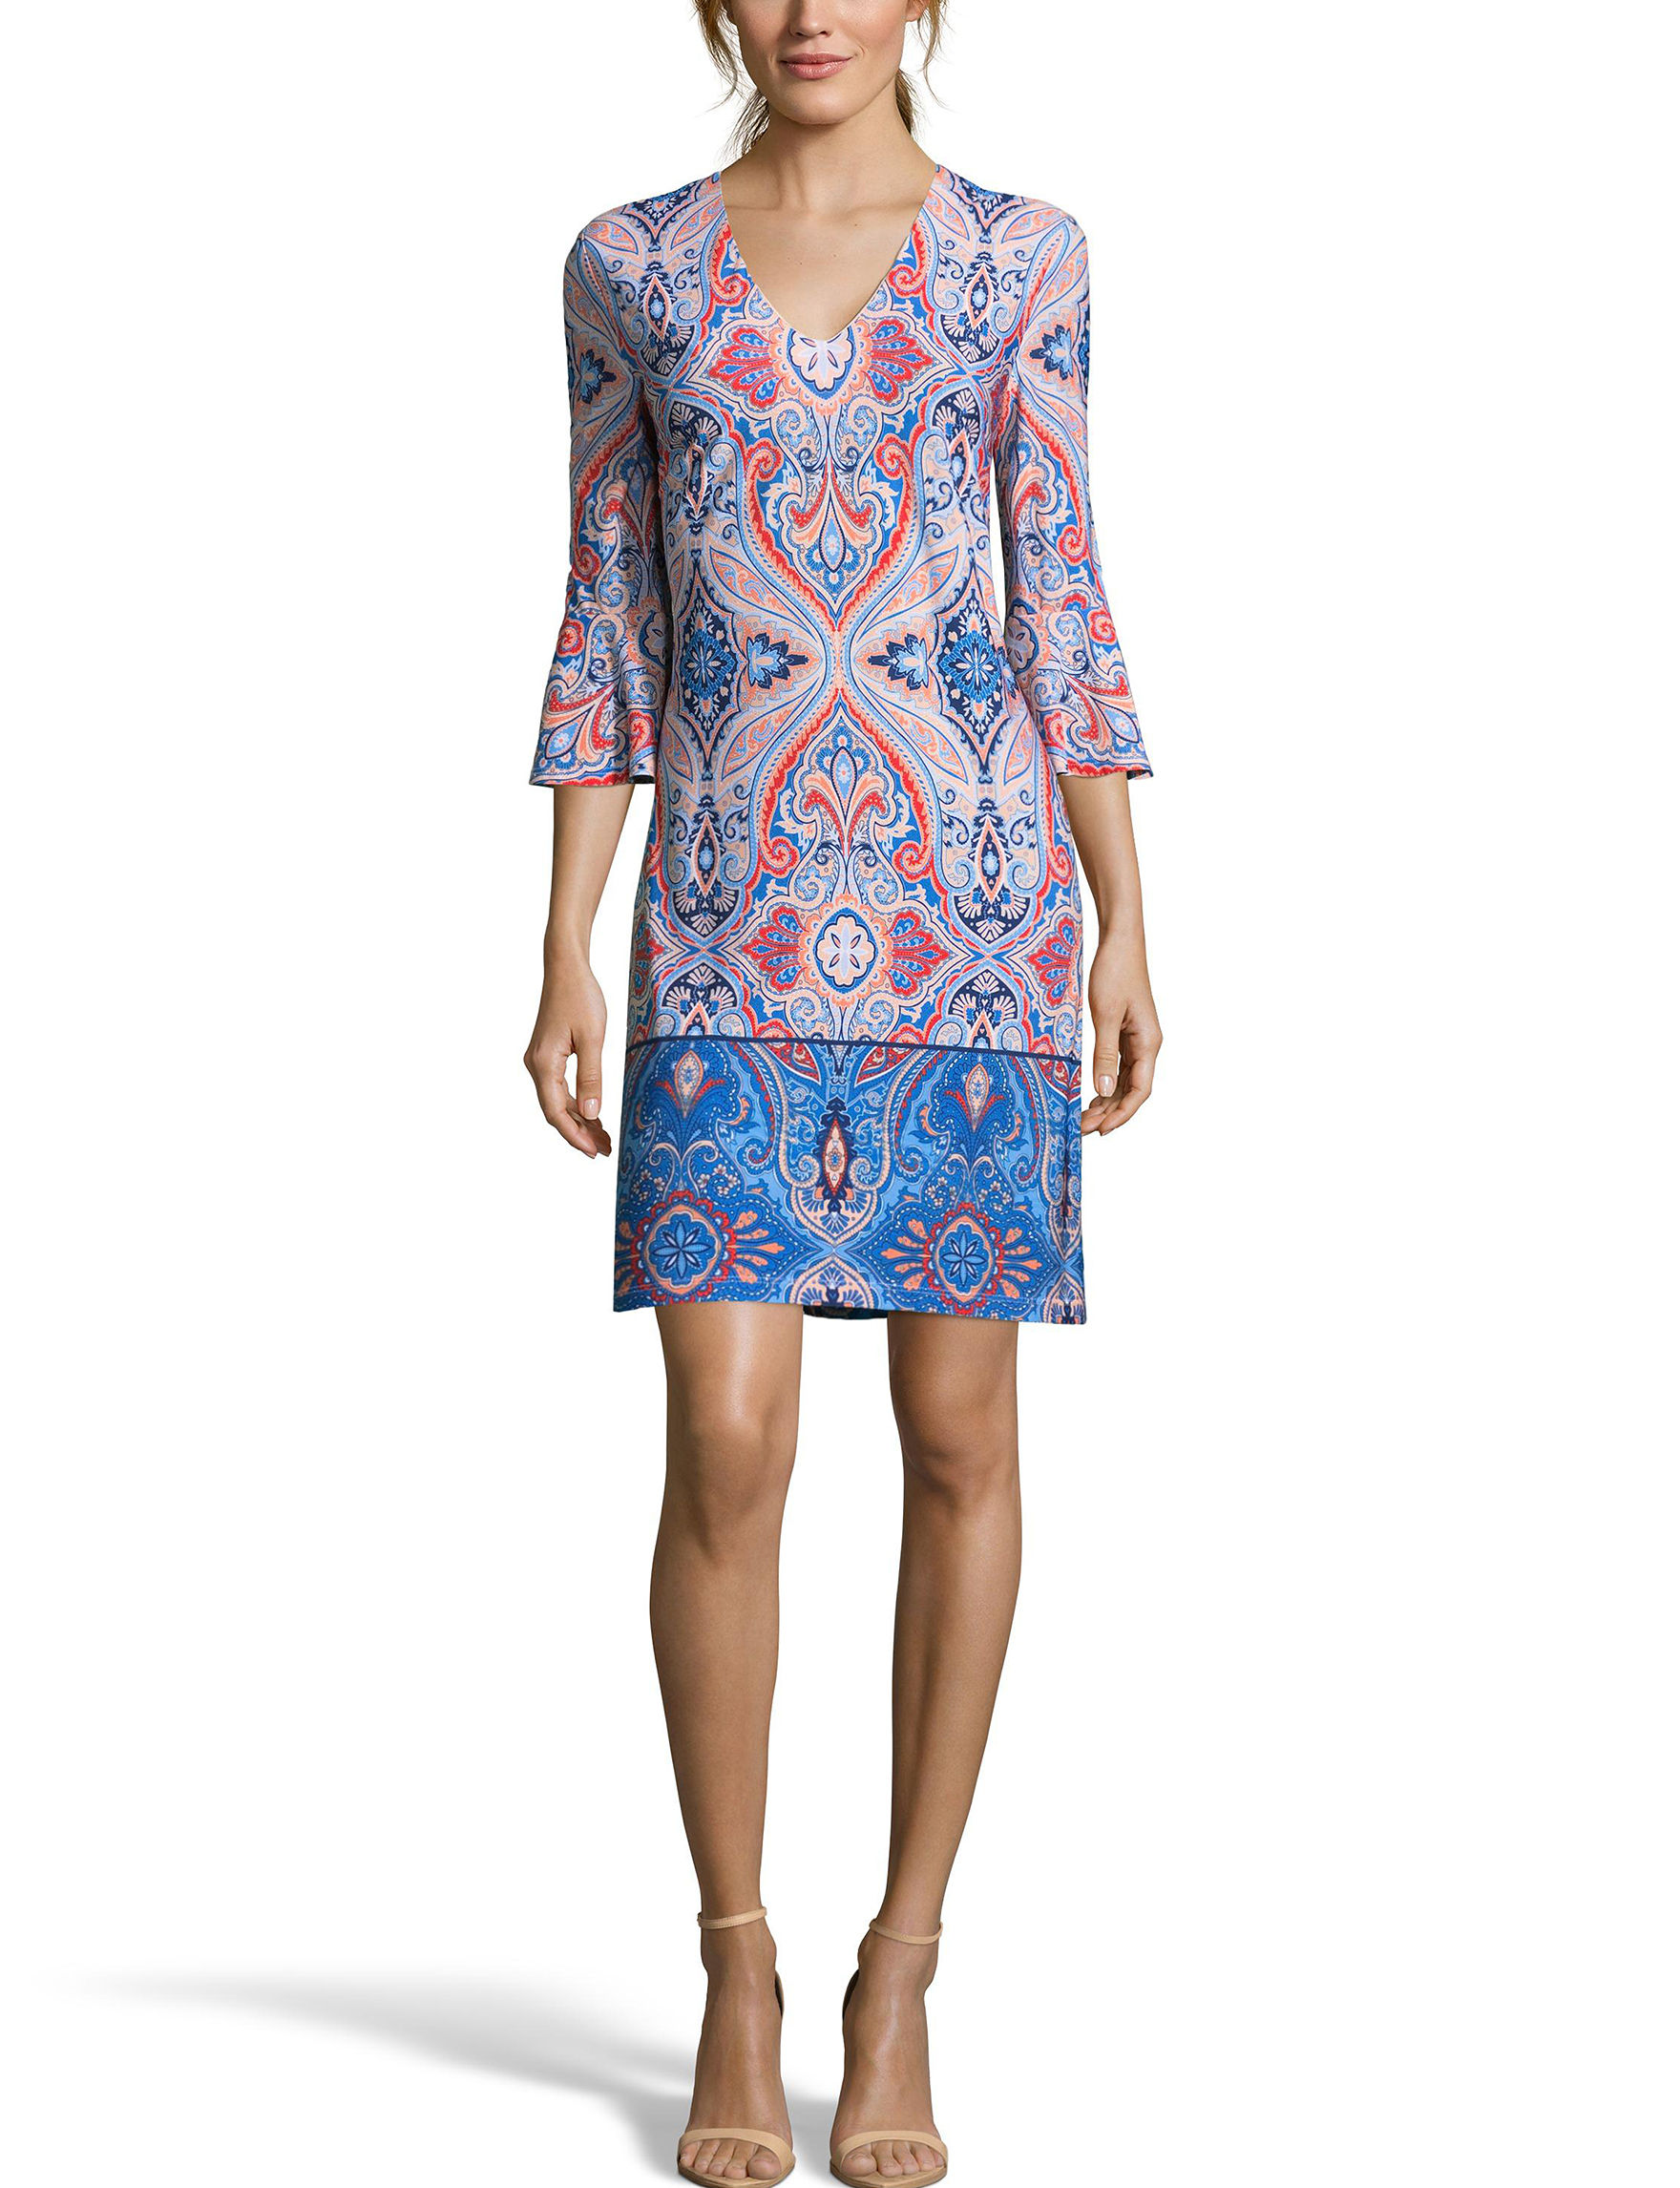 Nicole Miller Blue / Coral Everyday & Casual Shift Dresses